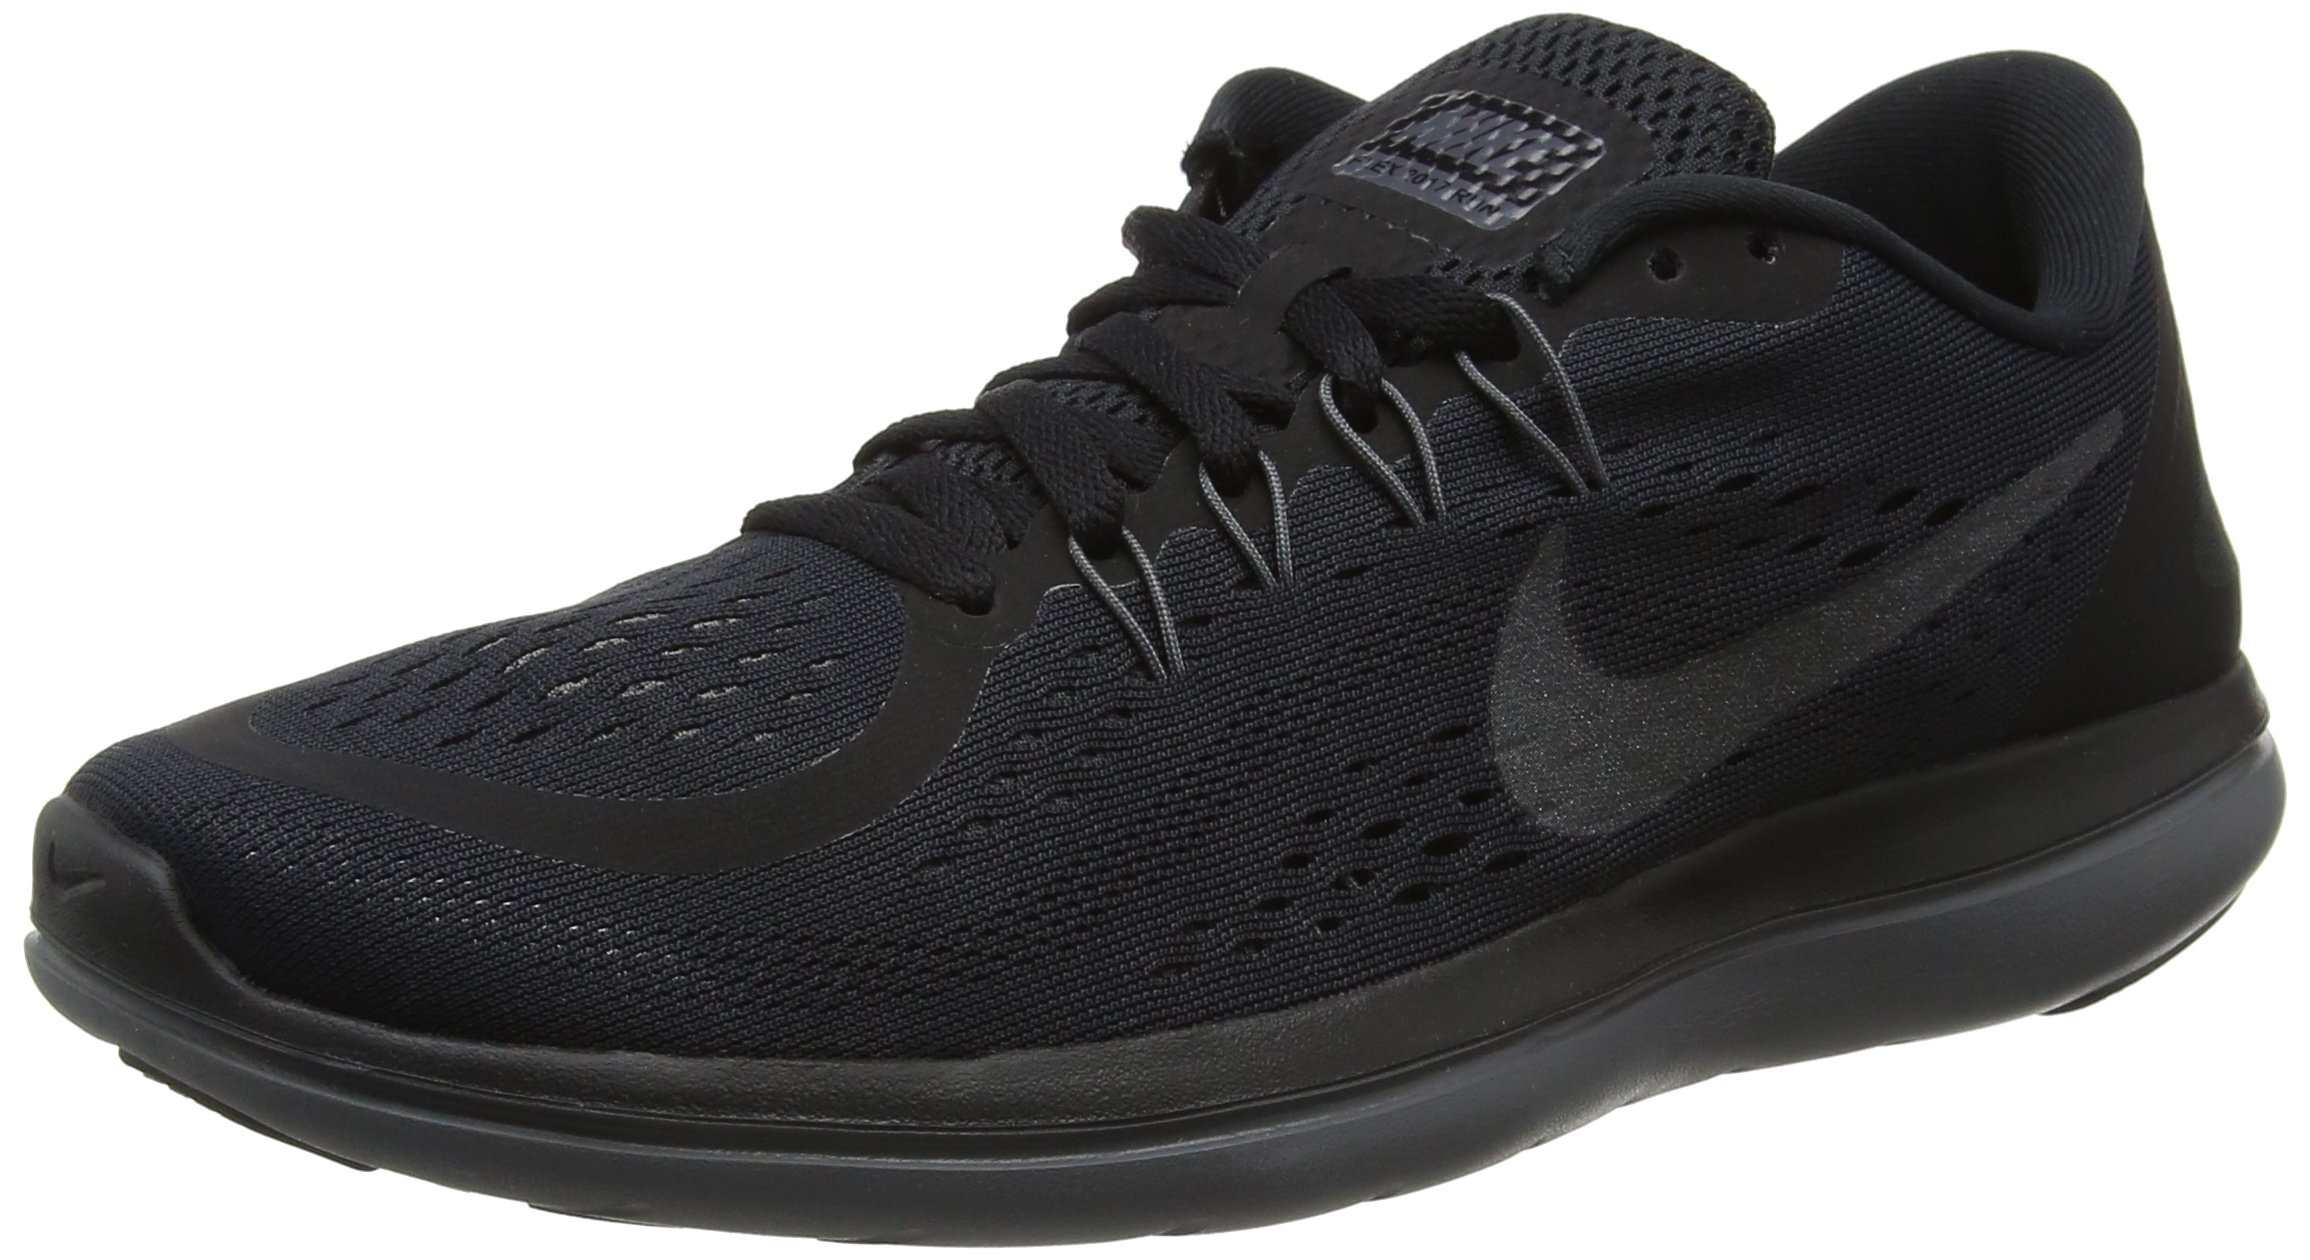 NIKE Women's Flex 2017 RN Running Shoe Black/Metallic Hematite/Anthracite/Dark Grey Size